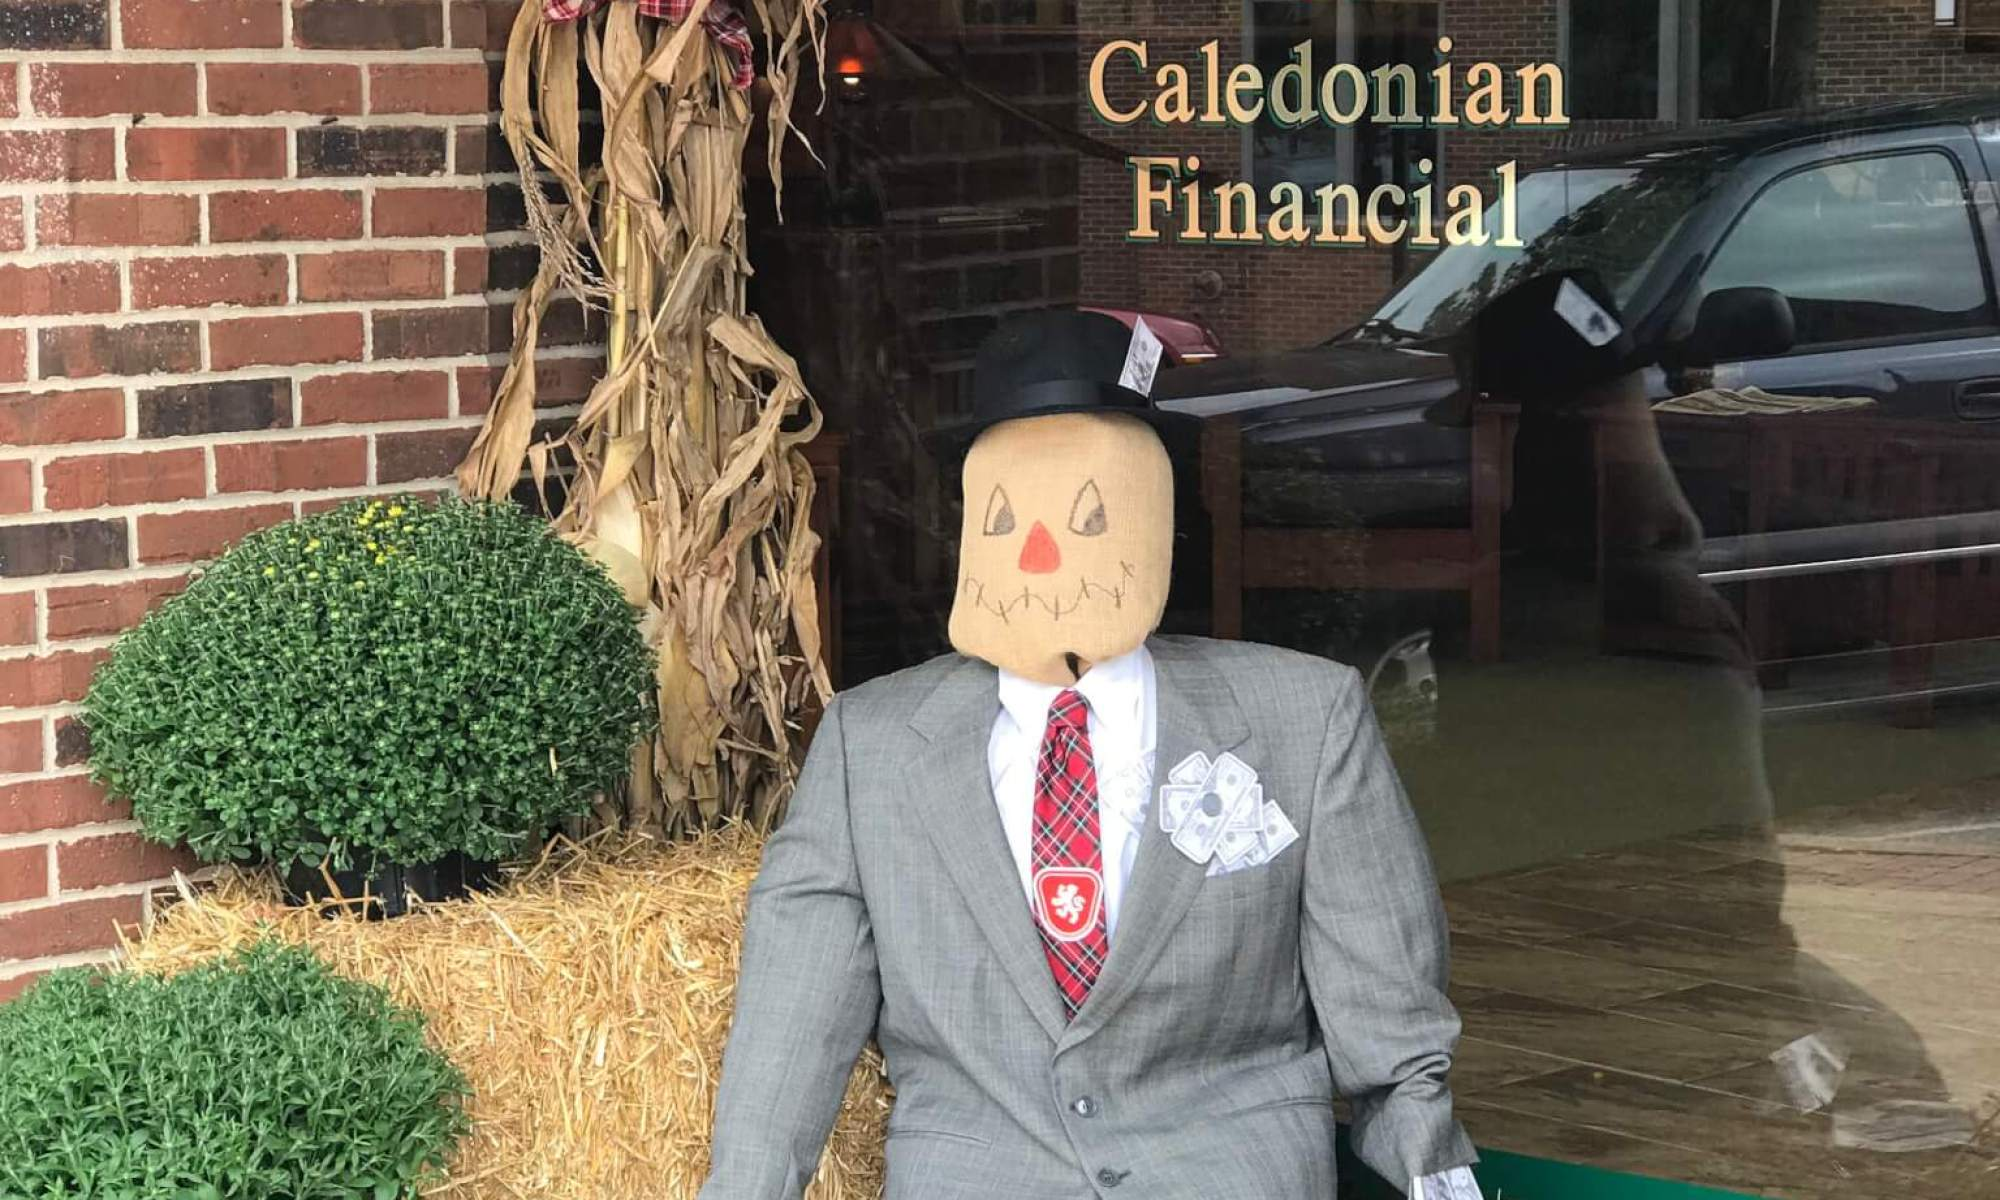 Caledonian Financial's entry in the Maury County Visitors Bureau scarecrow contest.